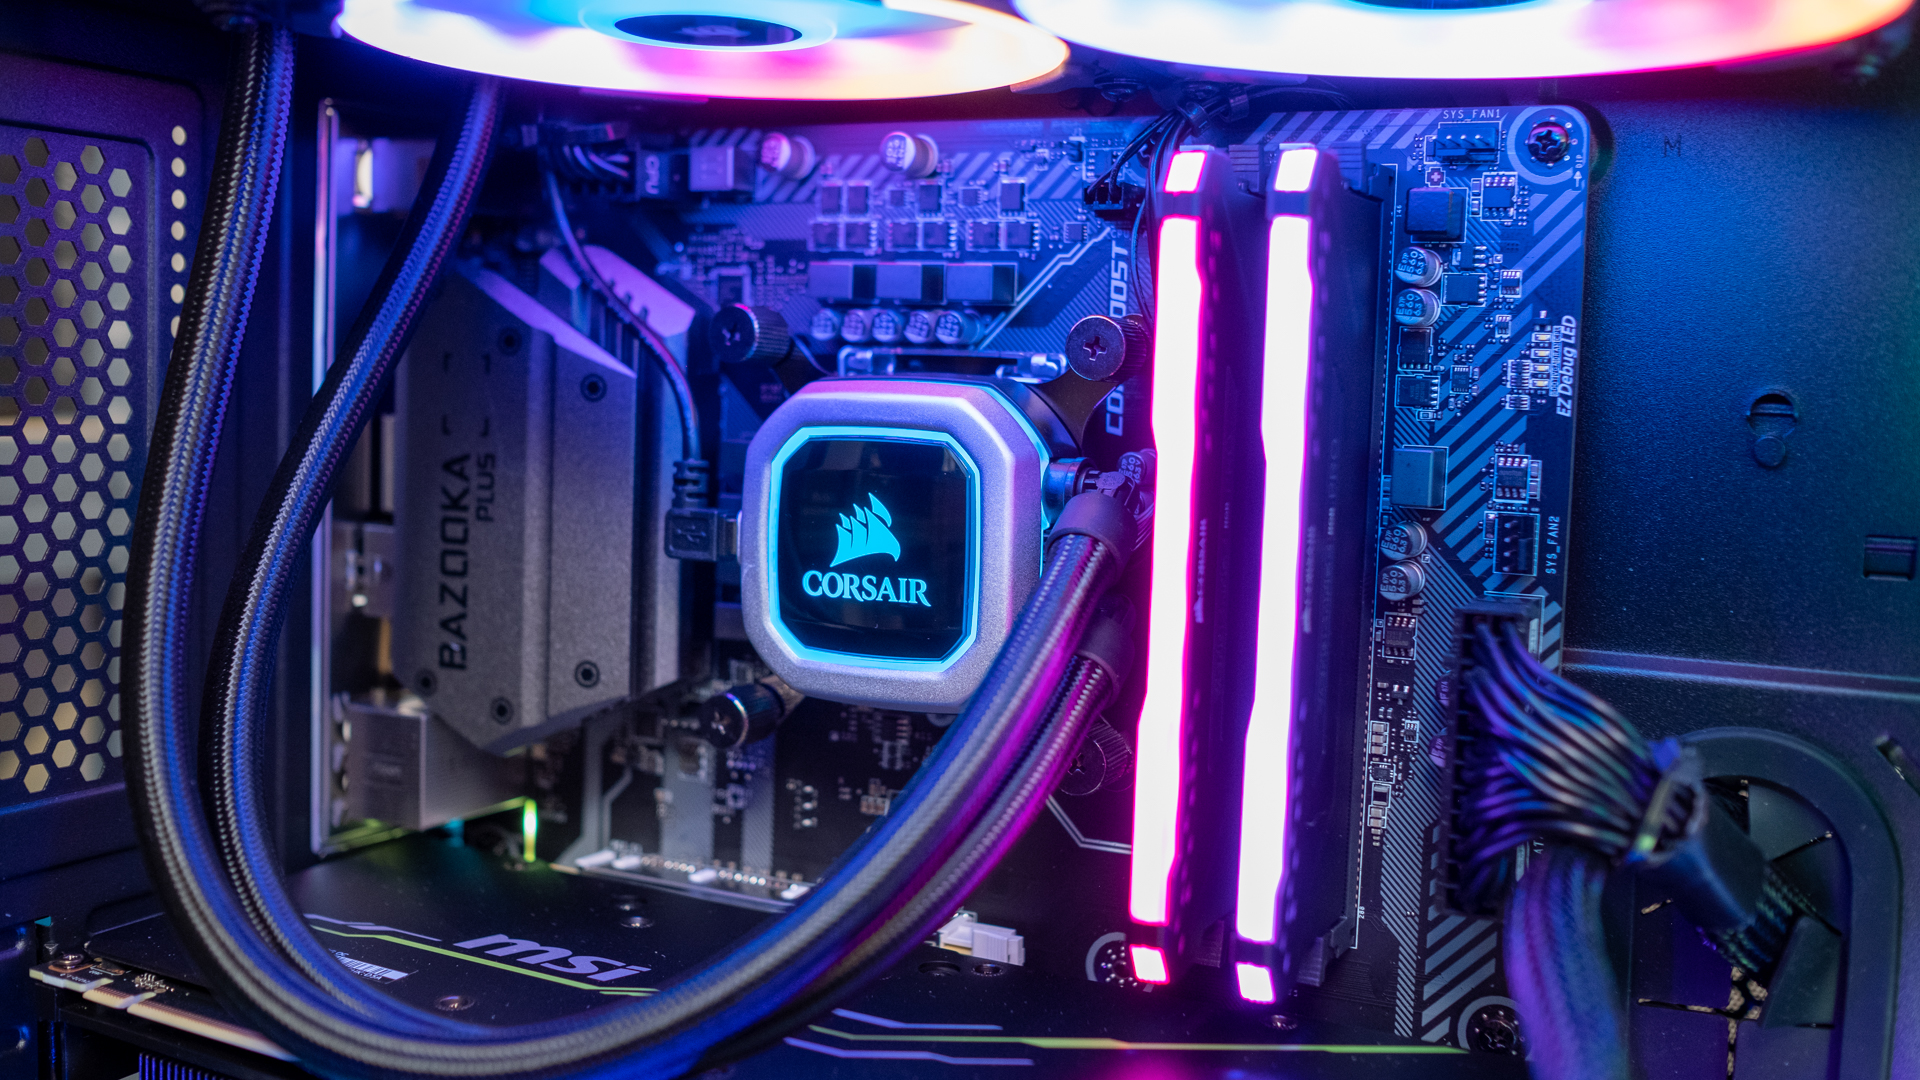 Corsair Vengeance Gaming PC review